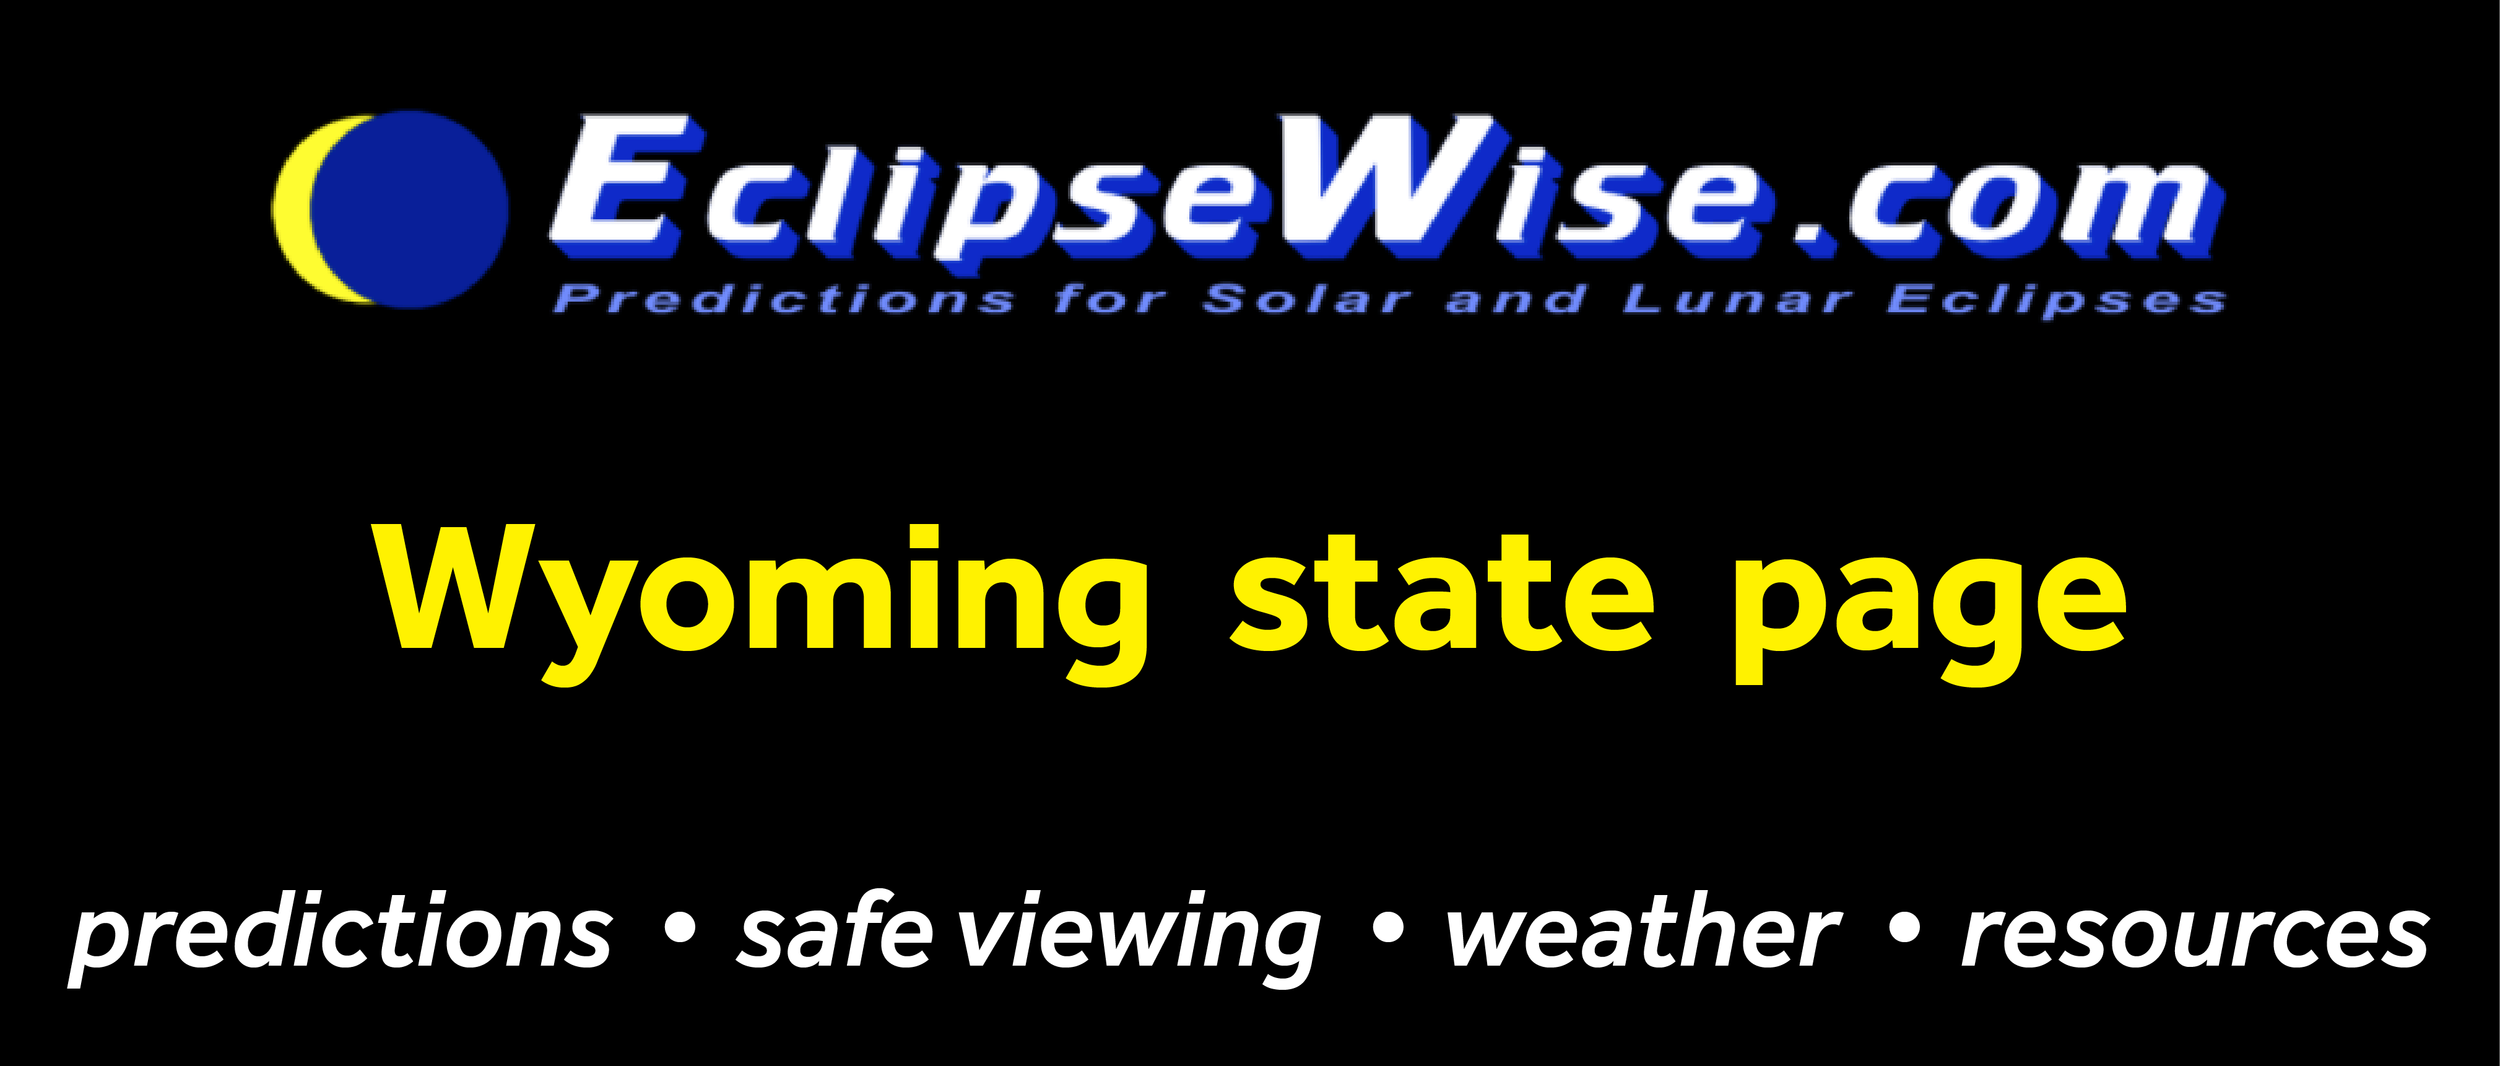 CLICK FOR THE Wyoming STATE PAGE ON   ECLIPSEWISE.COM  . THE SITE PROVIDES THE MOST COMPREHENSIVE AND AUTHORITATIVE STATE PAGES FOR THE 2017 ECLIPSE. ECLIPSEWISE.COM IS BUILT BY FRED ESPENAK, RETIRED NASA ASTROPHYSICIST AND THE LEADING EXPERT ON ECLIPSE PREDICTIONS.